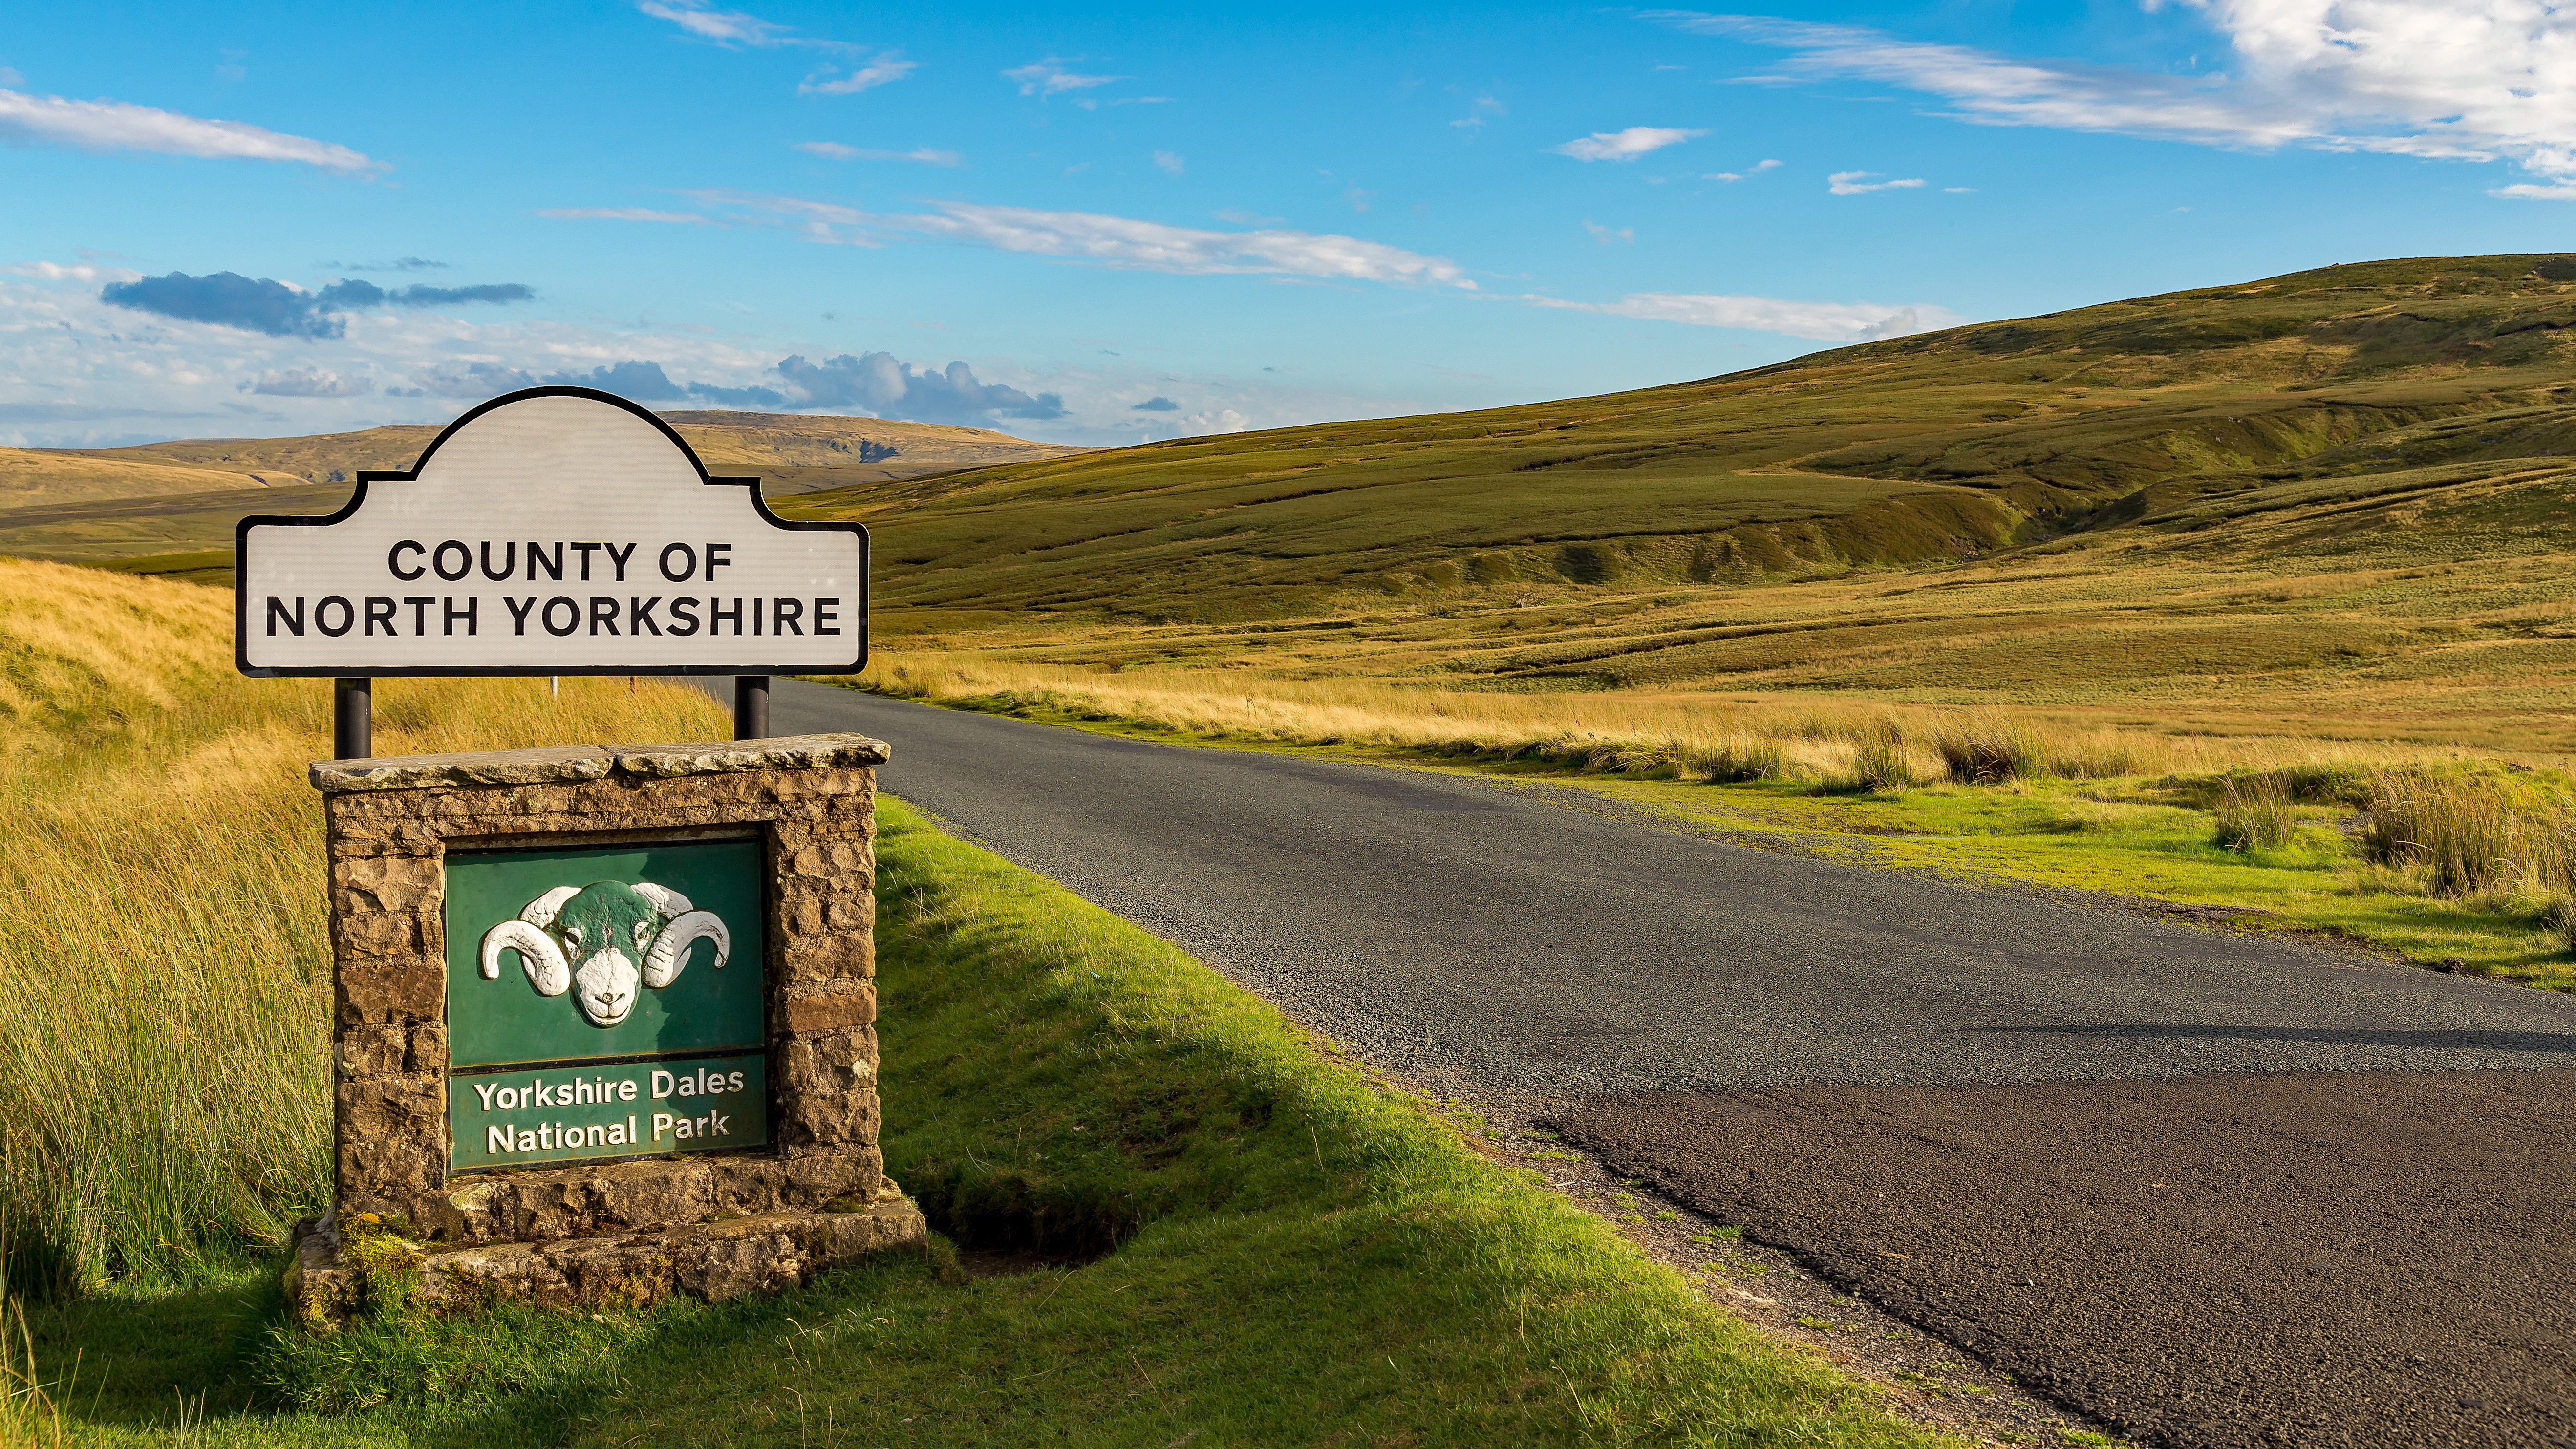 Sign: County of North Yorkshire